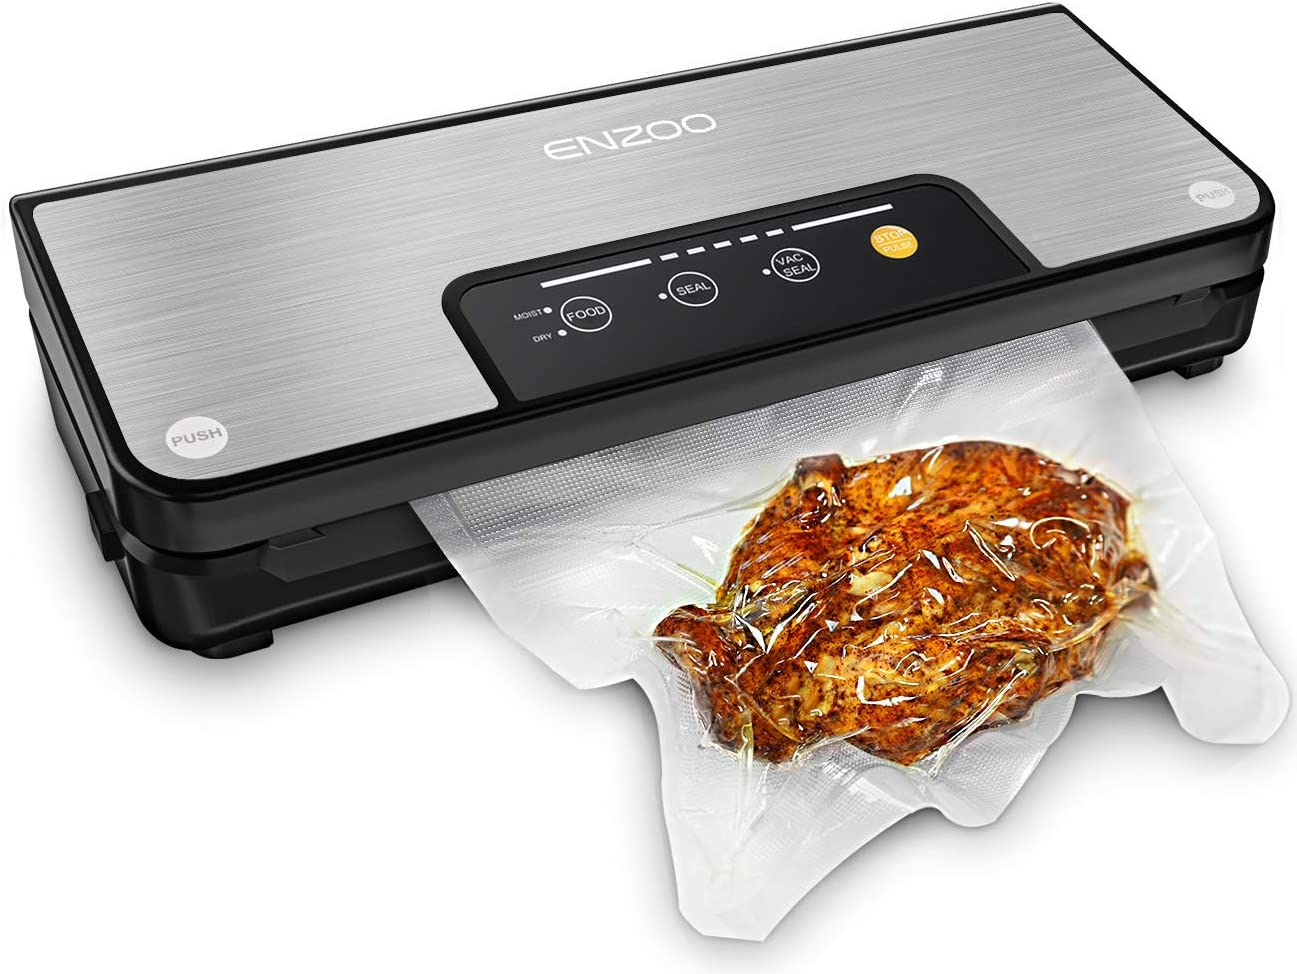 ENZOO Vacuum Sealer Machine, Automatic Vacuum Air Sealing System for Food Preservation with Built-in Cutter w/Starter Kit|Led Indicator Lights|Easy to Clean|Dry & Moist Food Modes